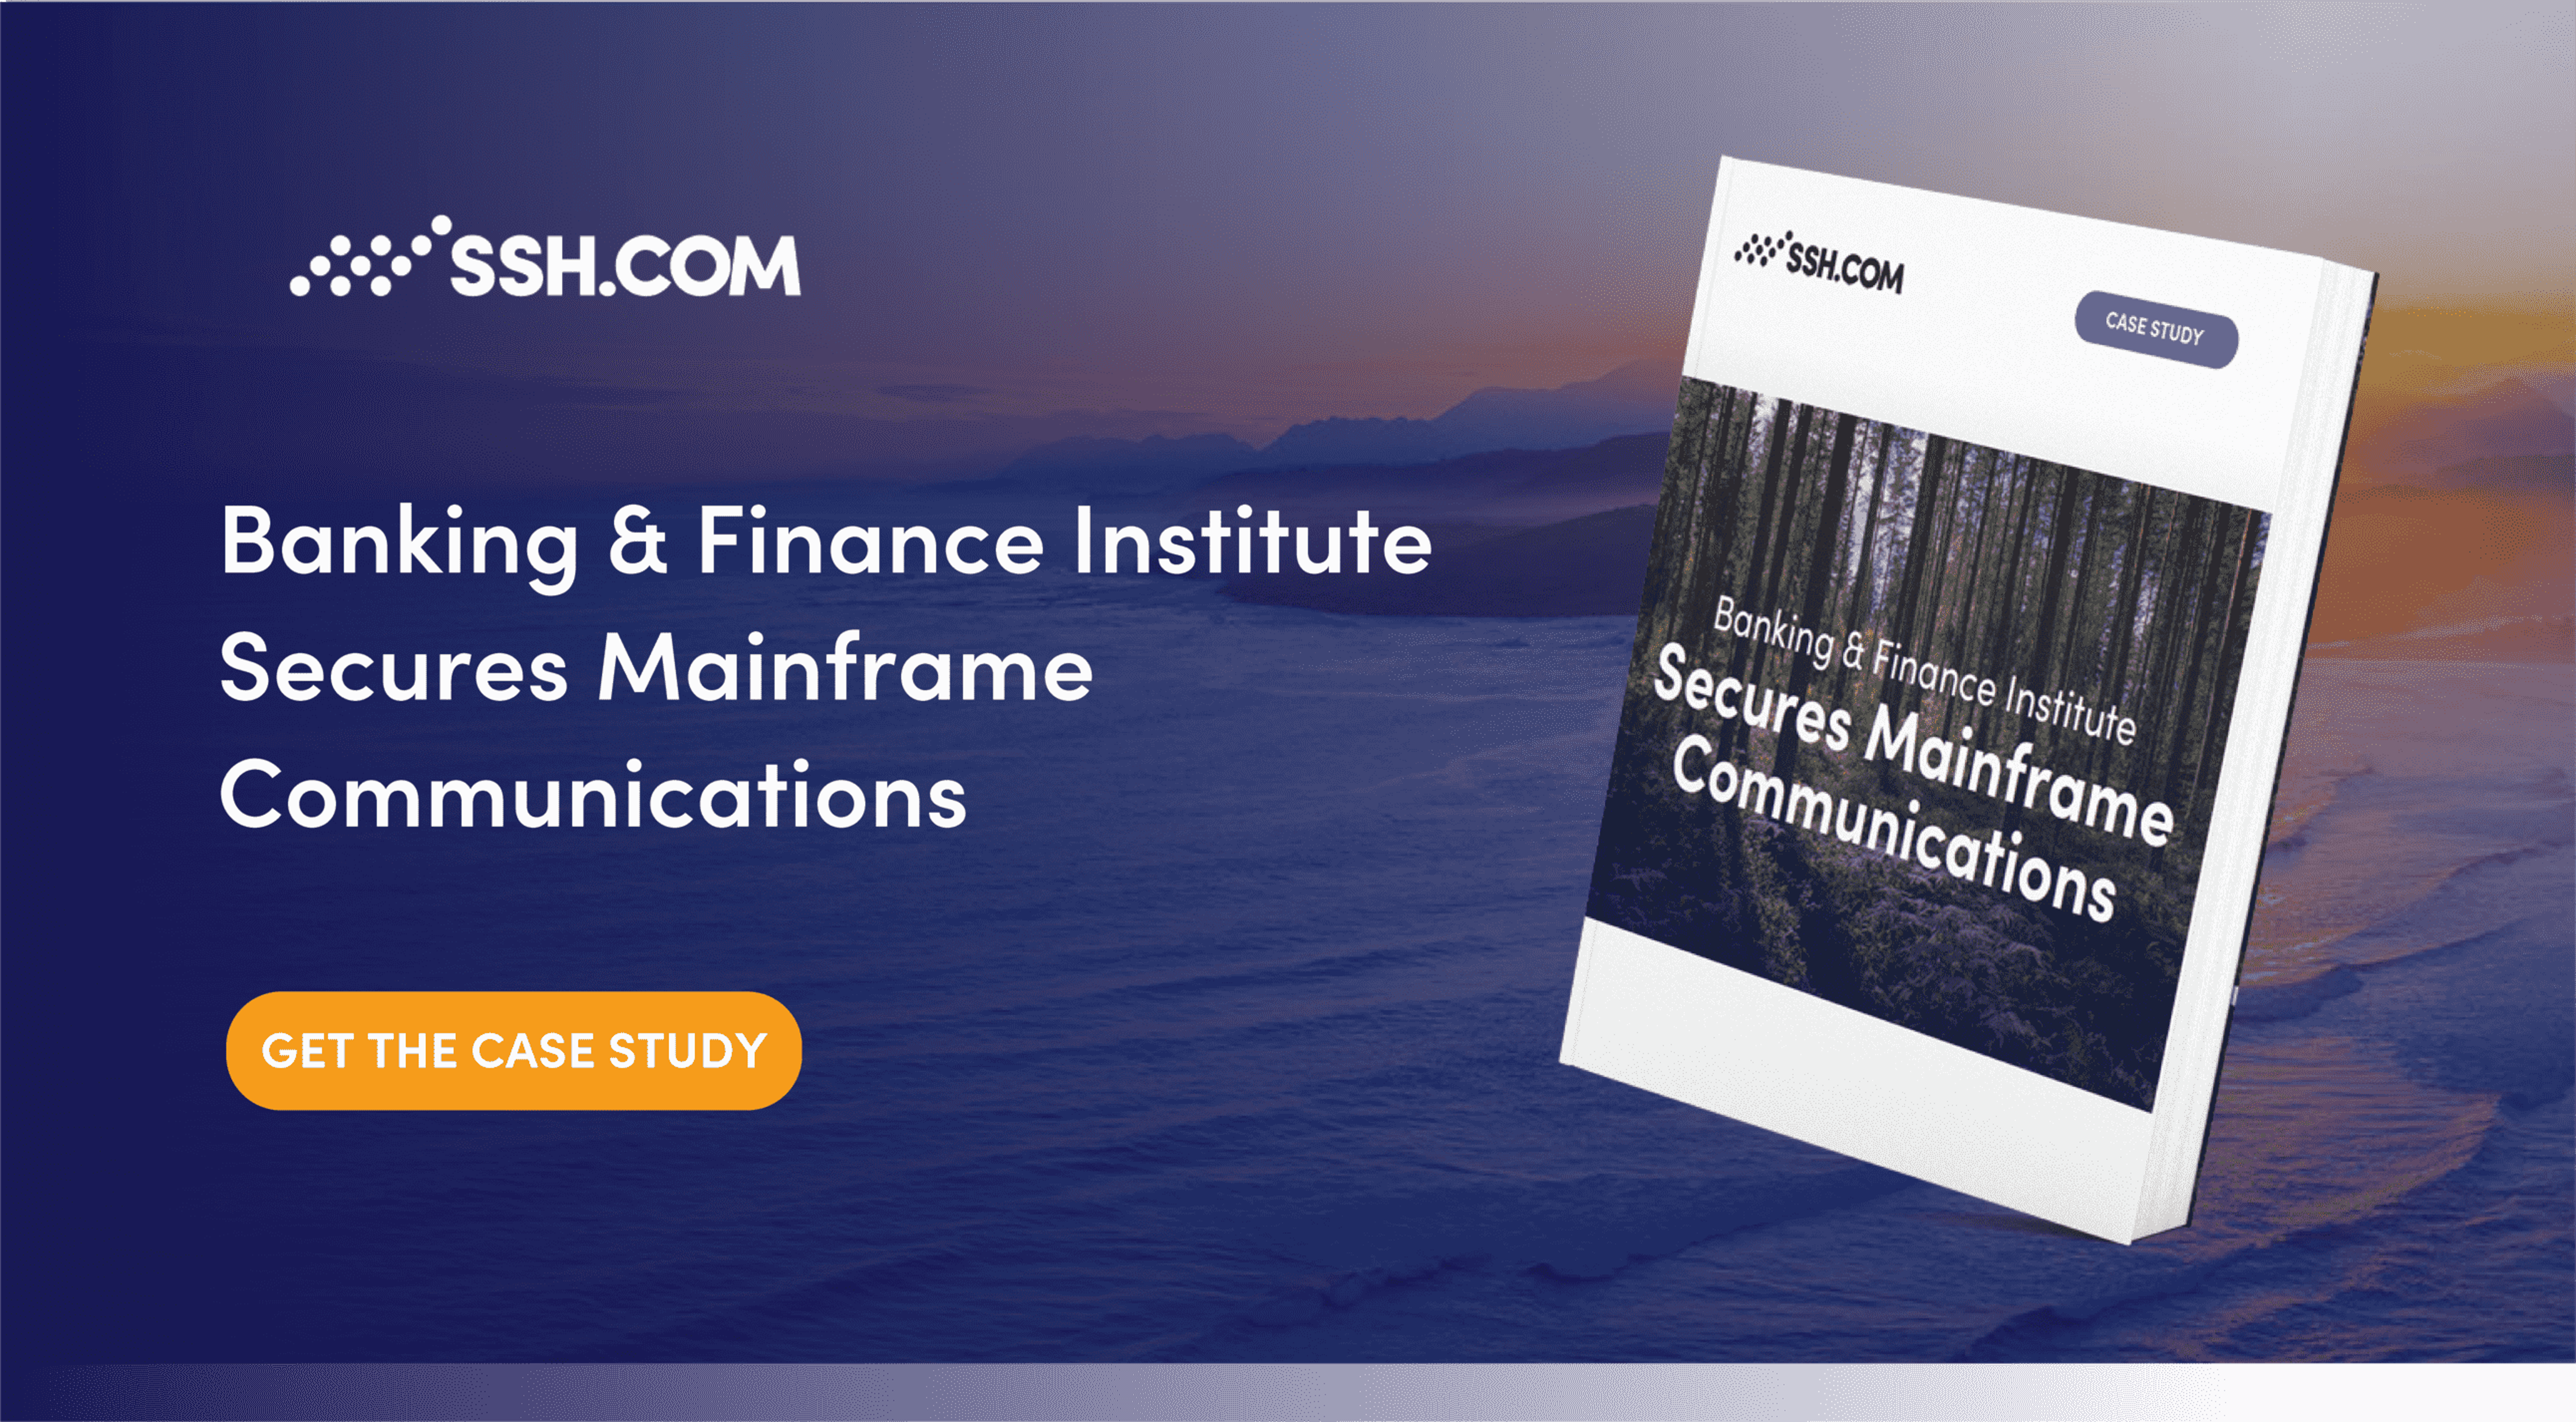 CASE STUDY Global bank secures mainframe comms with Tectia z/OS